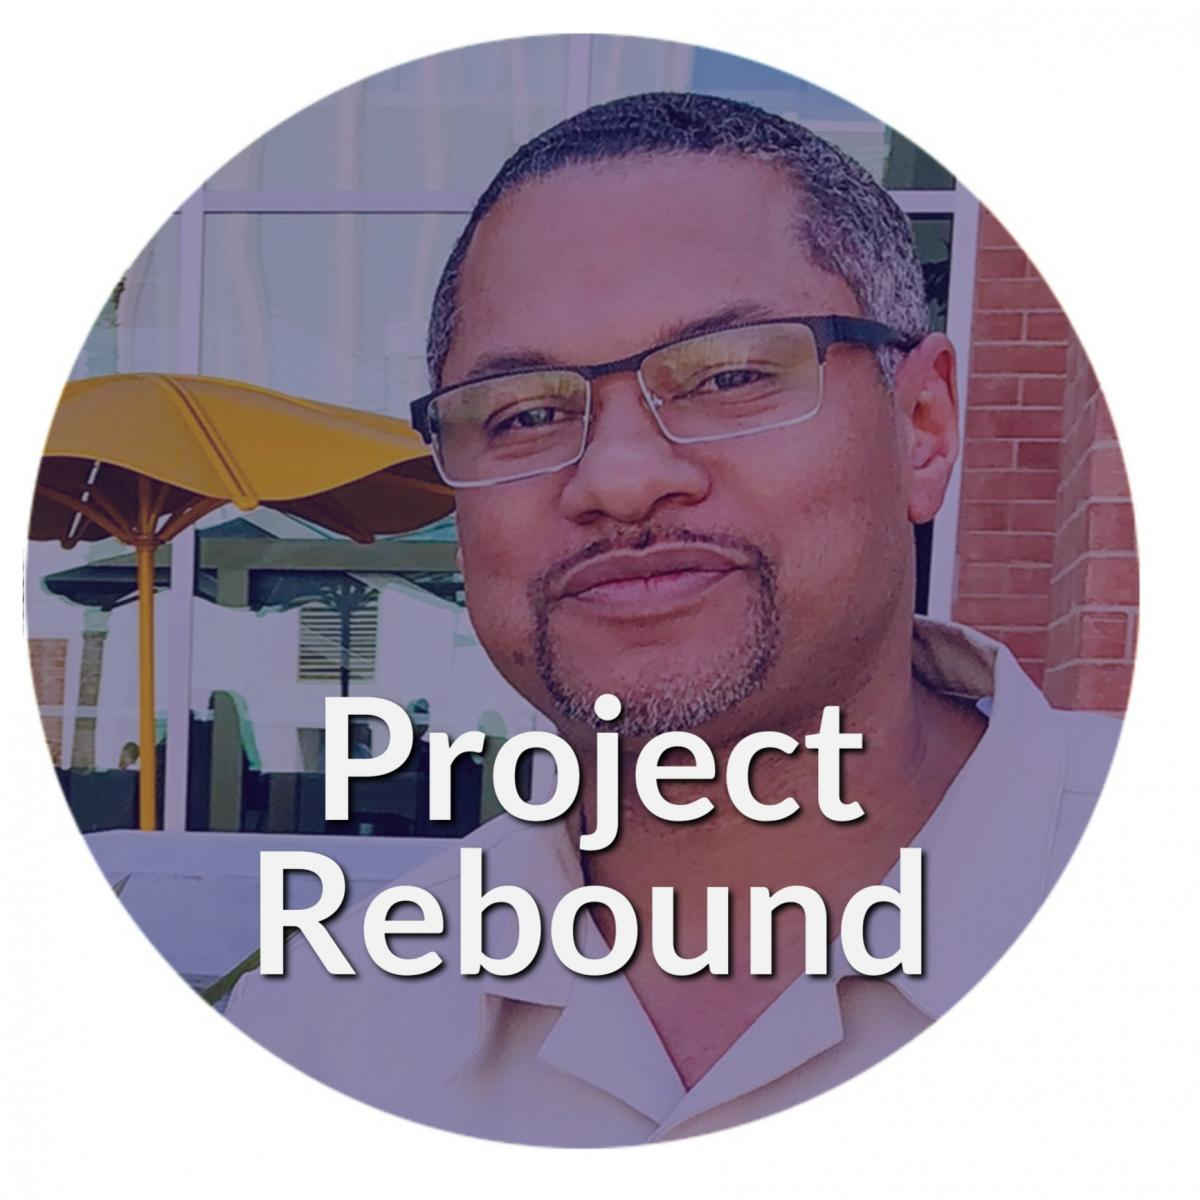 SF State University project rebound circle